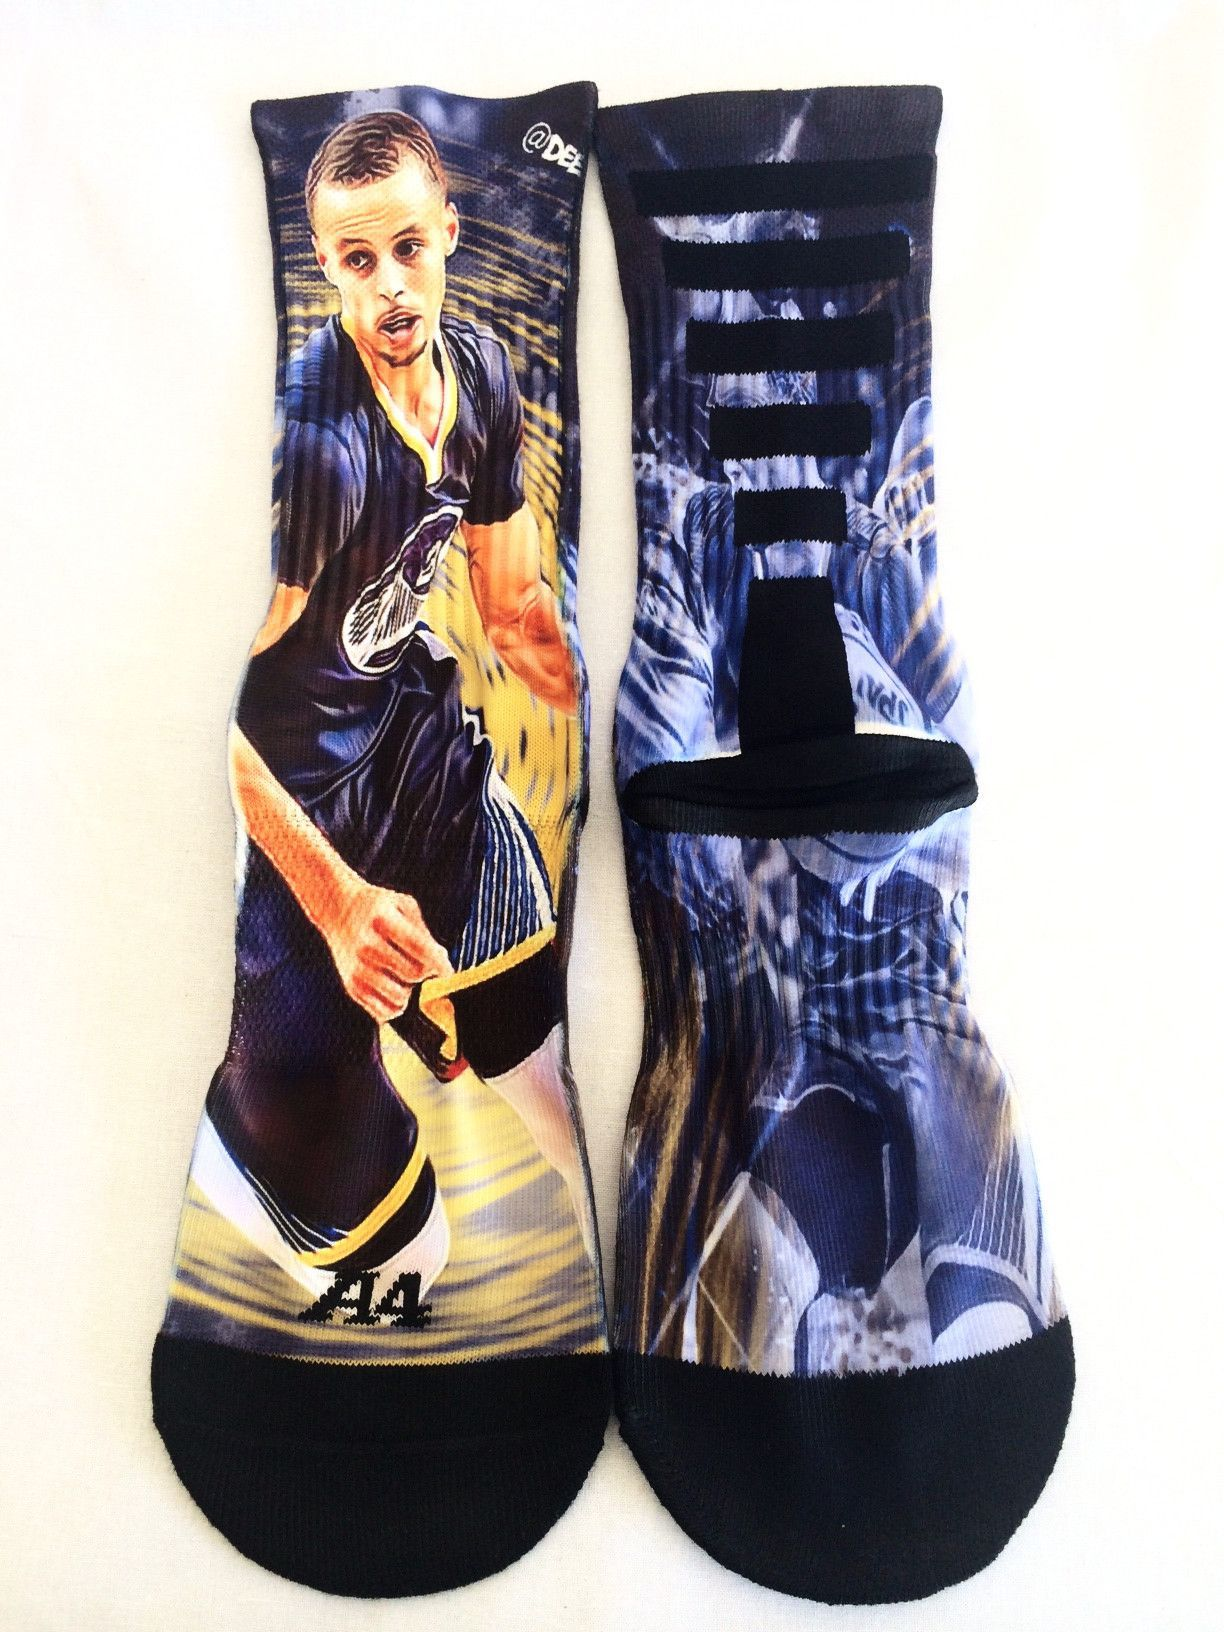 Stephen Curry Performance Socks - Stephen Curry Performance Socks Stephen Curry, Curry And Socks